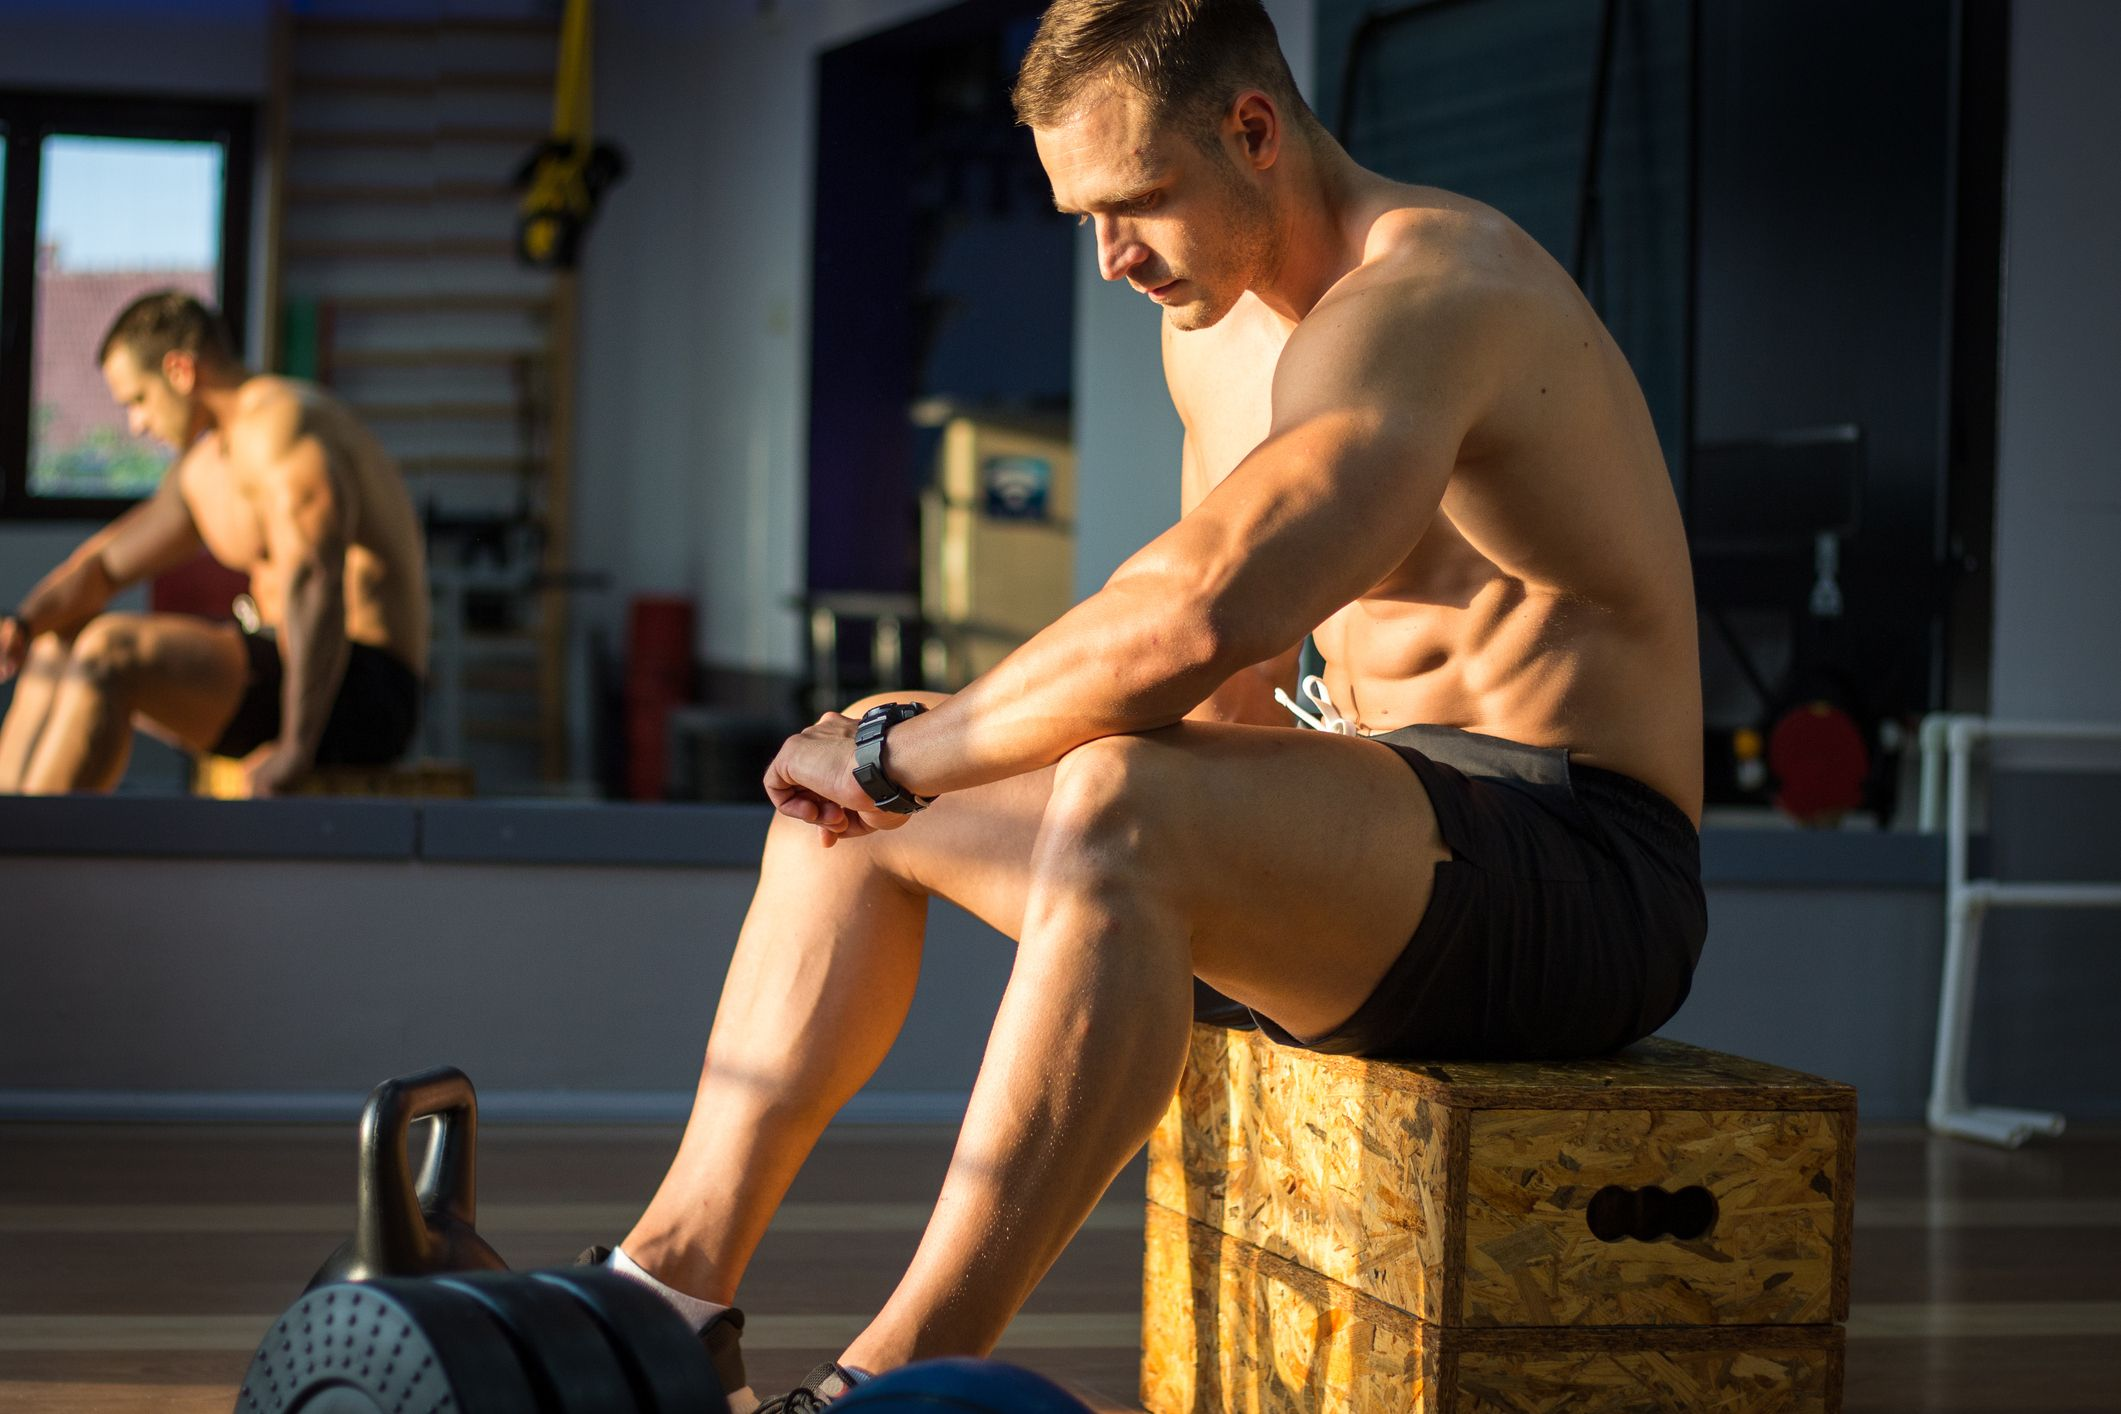 How to Use Rest Periods to Hack Your Workout